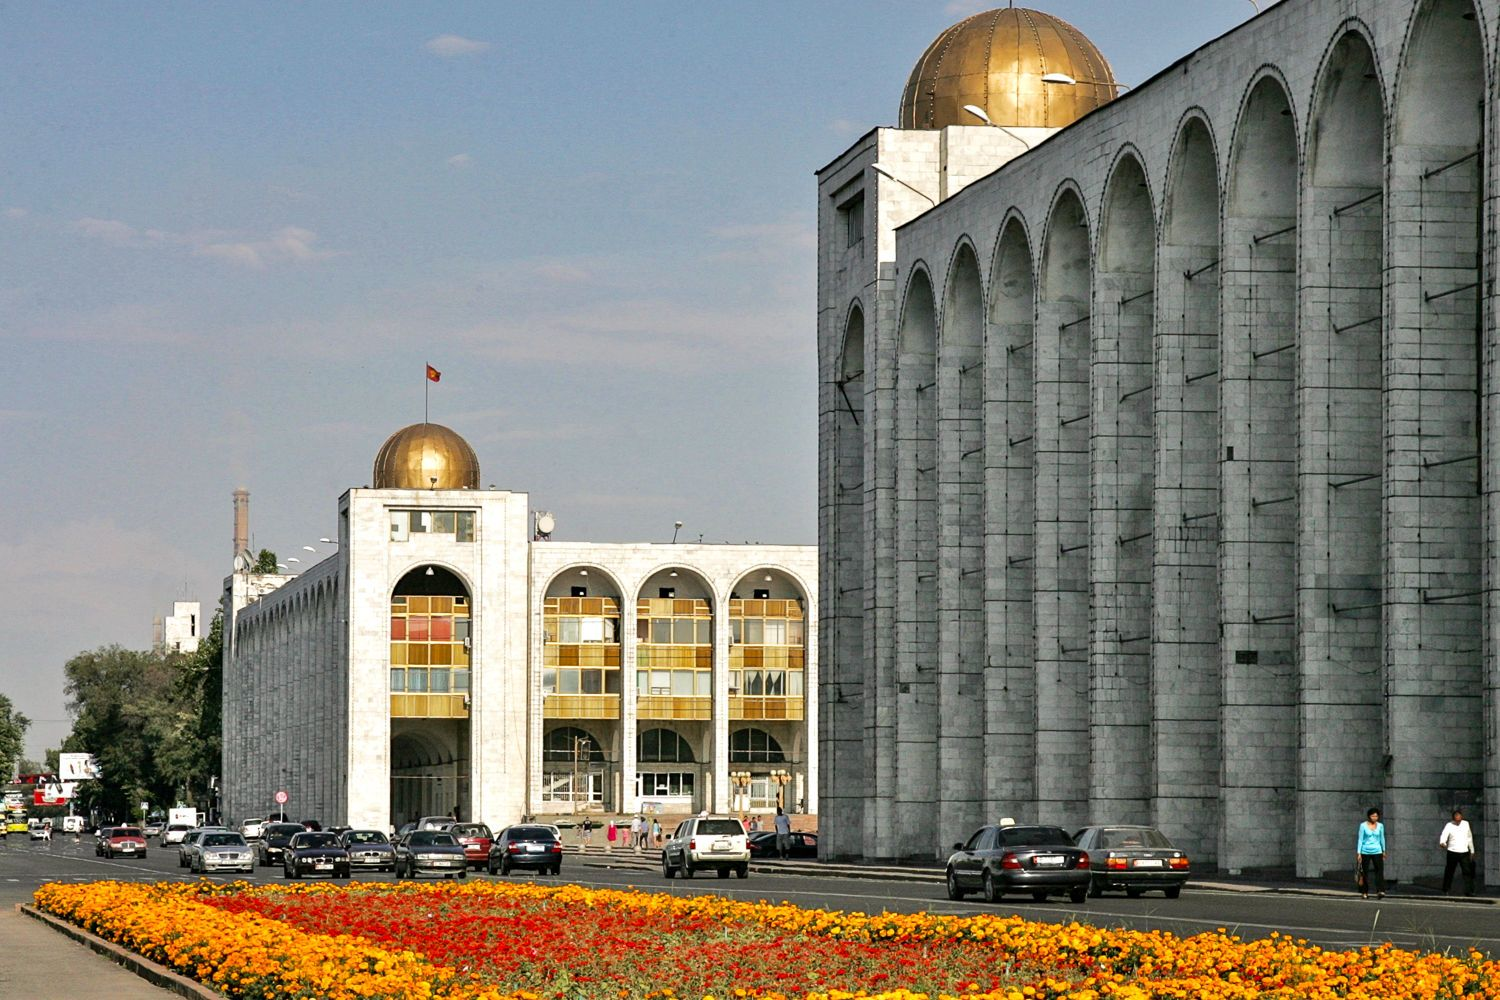 Arched buildings in main square Ala-Too, on Chui street in Bishkek travel guide